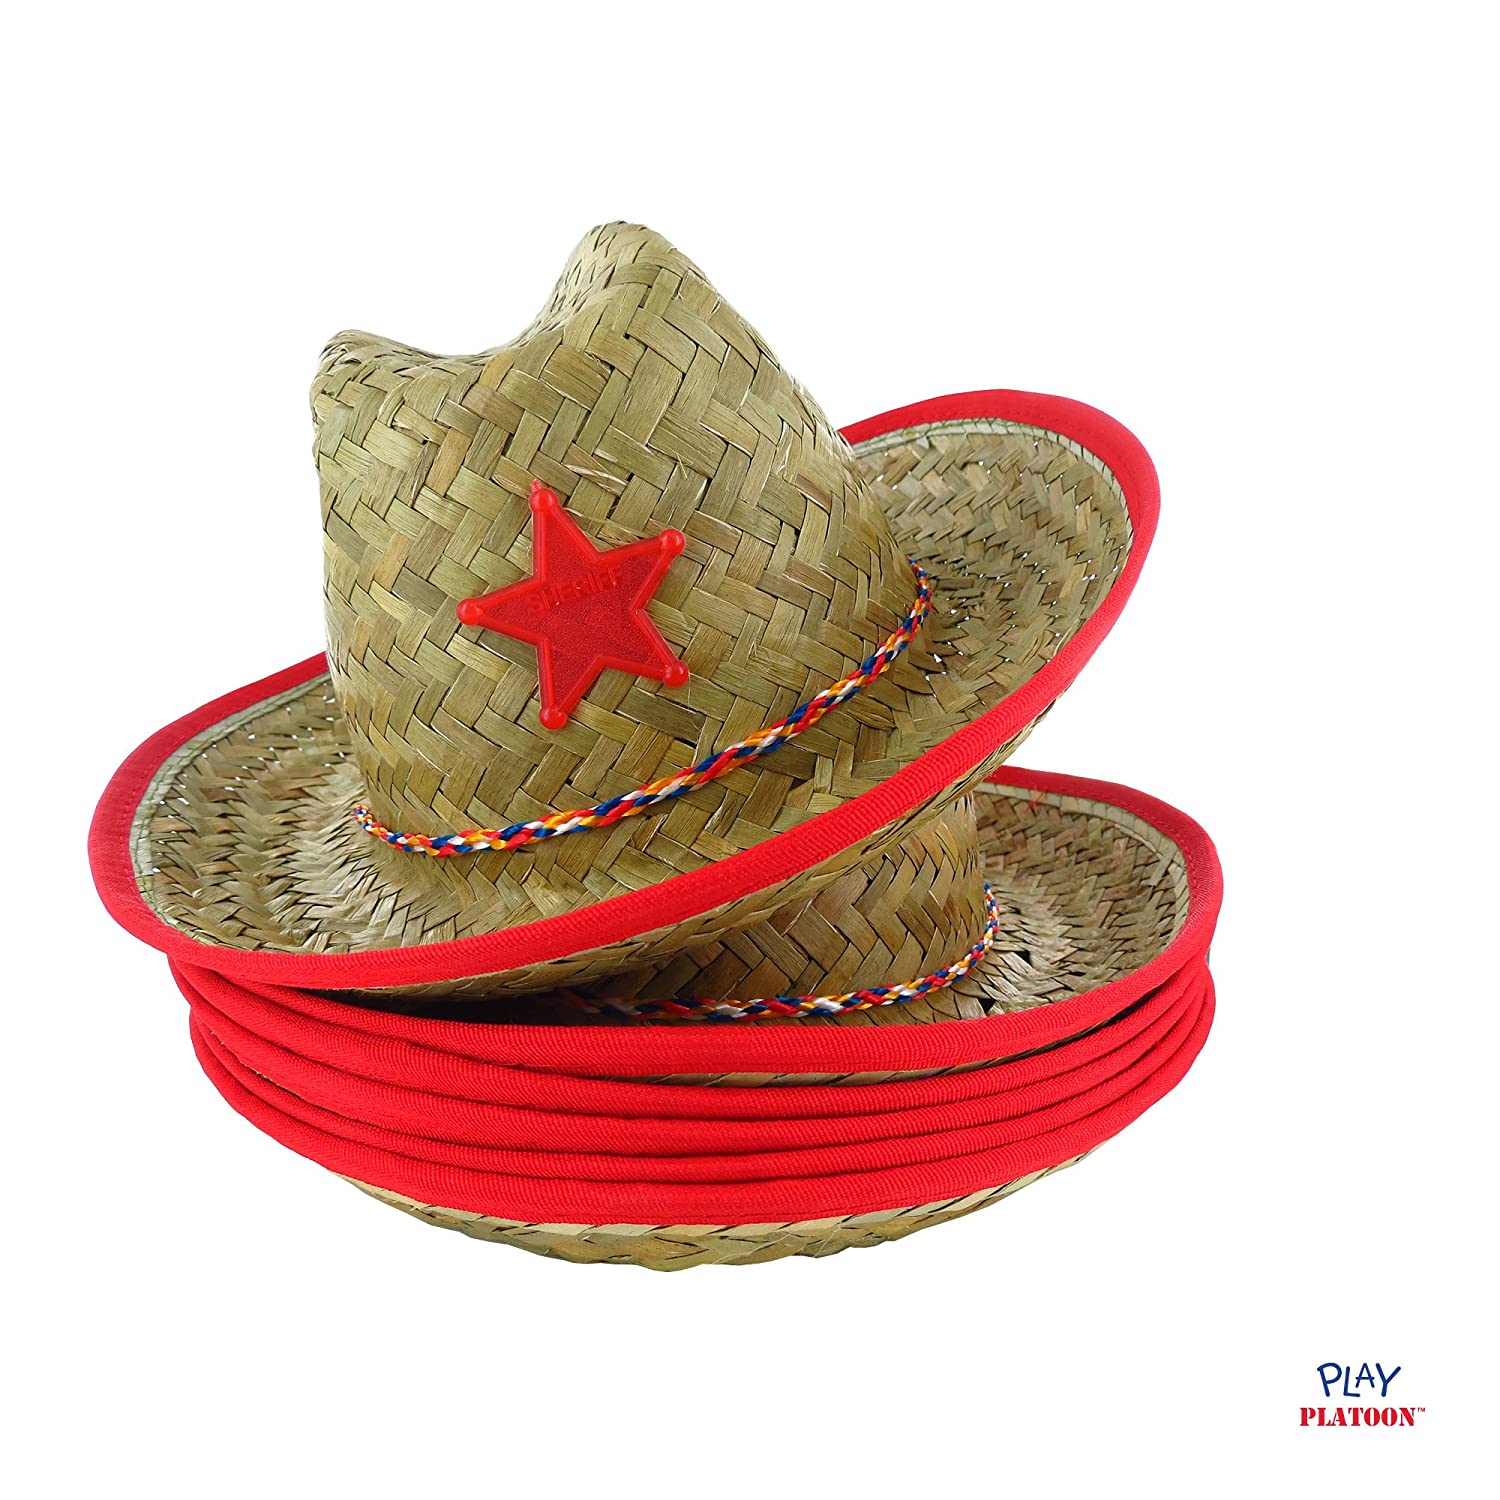 57800acc2f374 Dozen Straw Cowboy Hats with Cowboy Bandanas (6 Red   6 Blue) for Kids  larger image